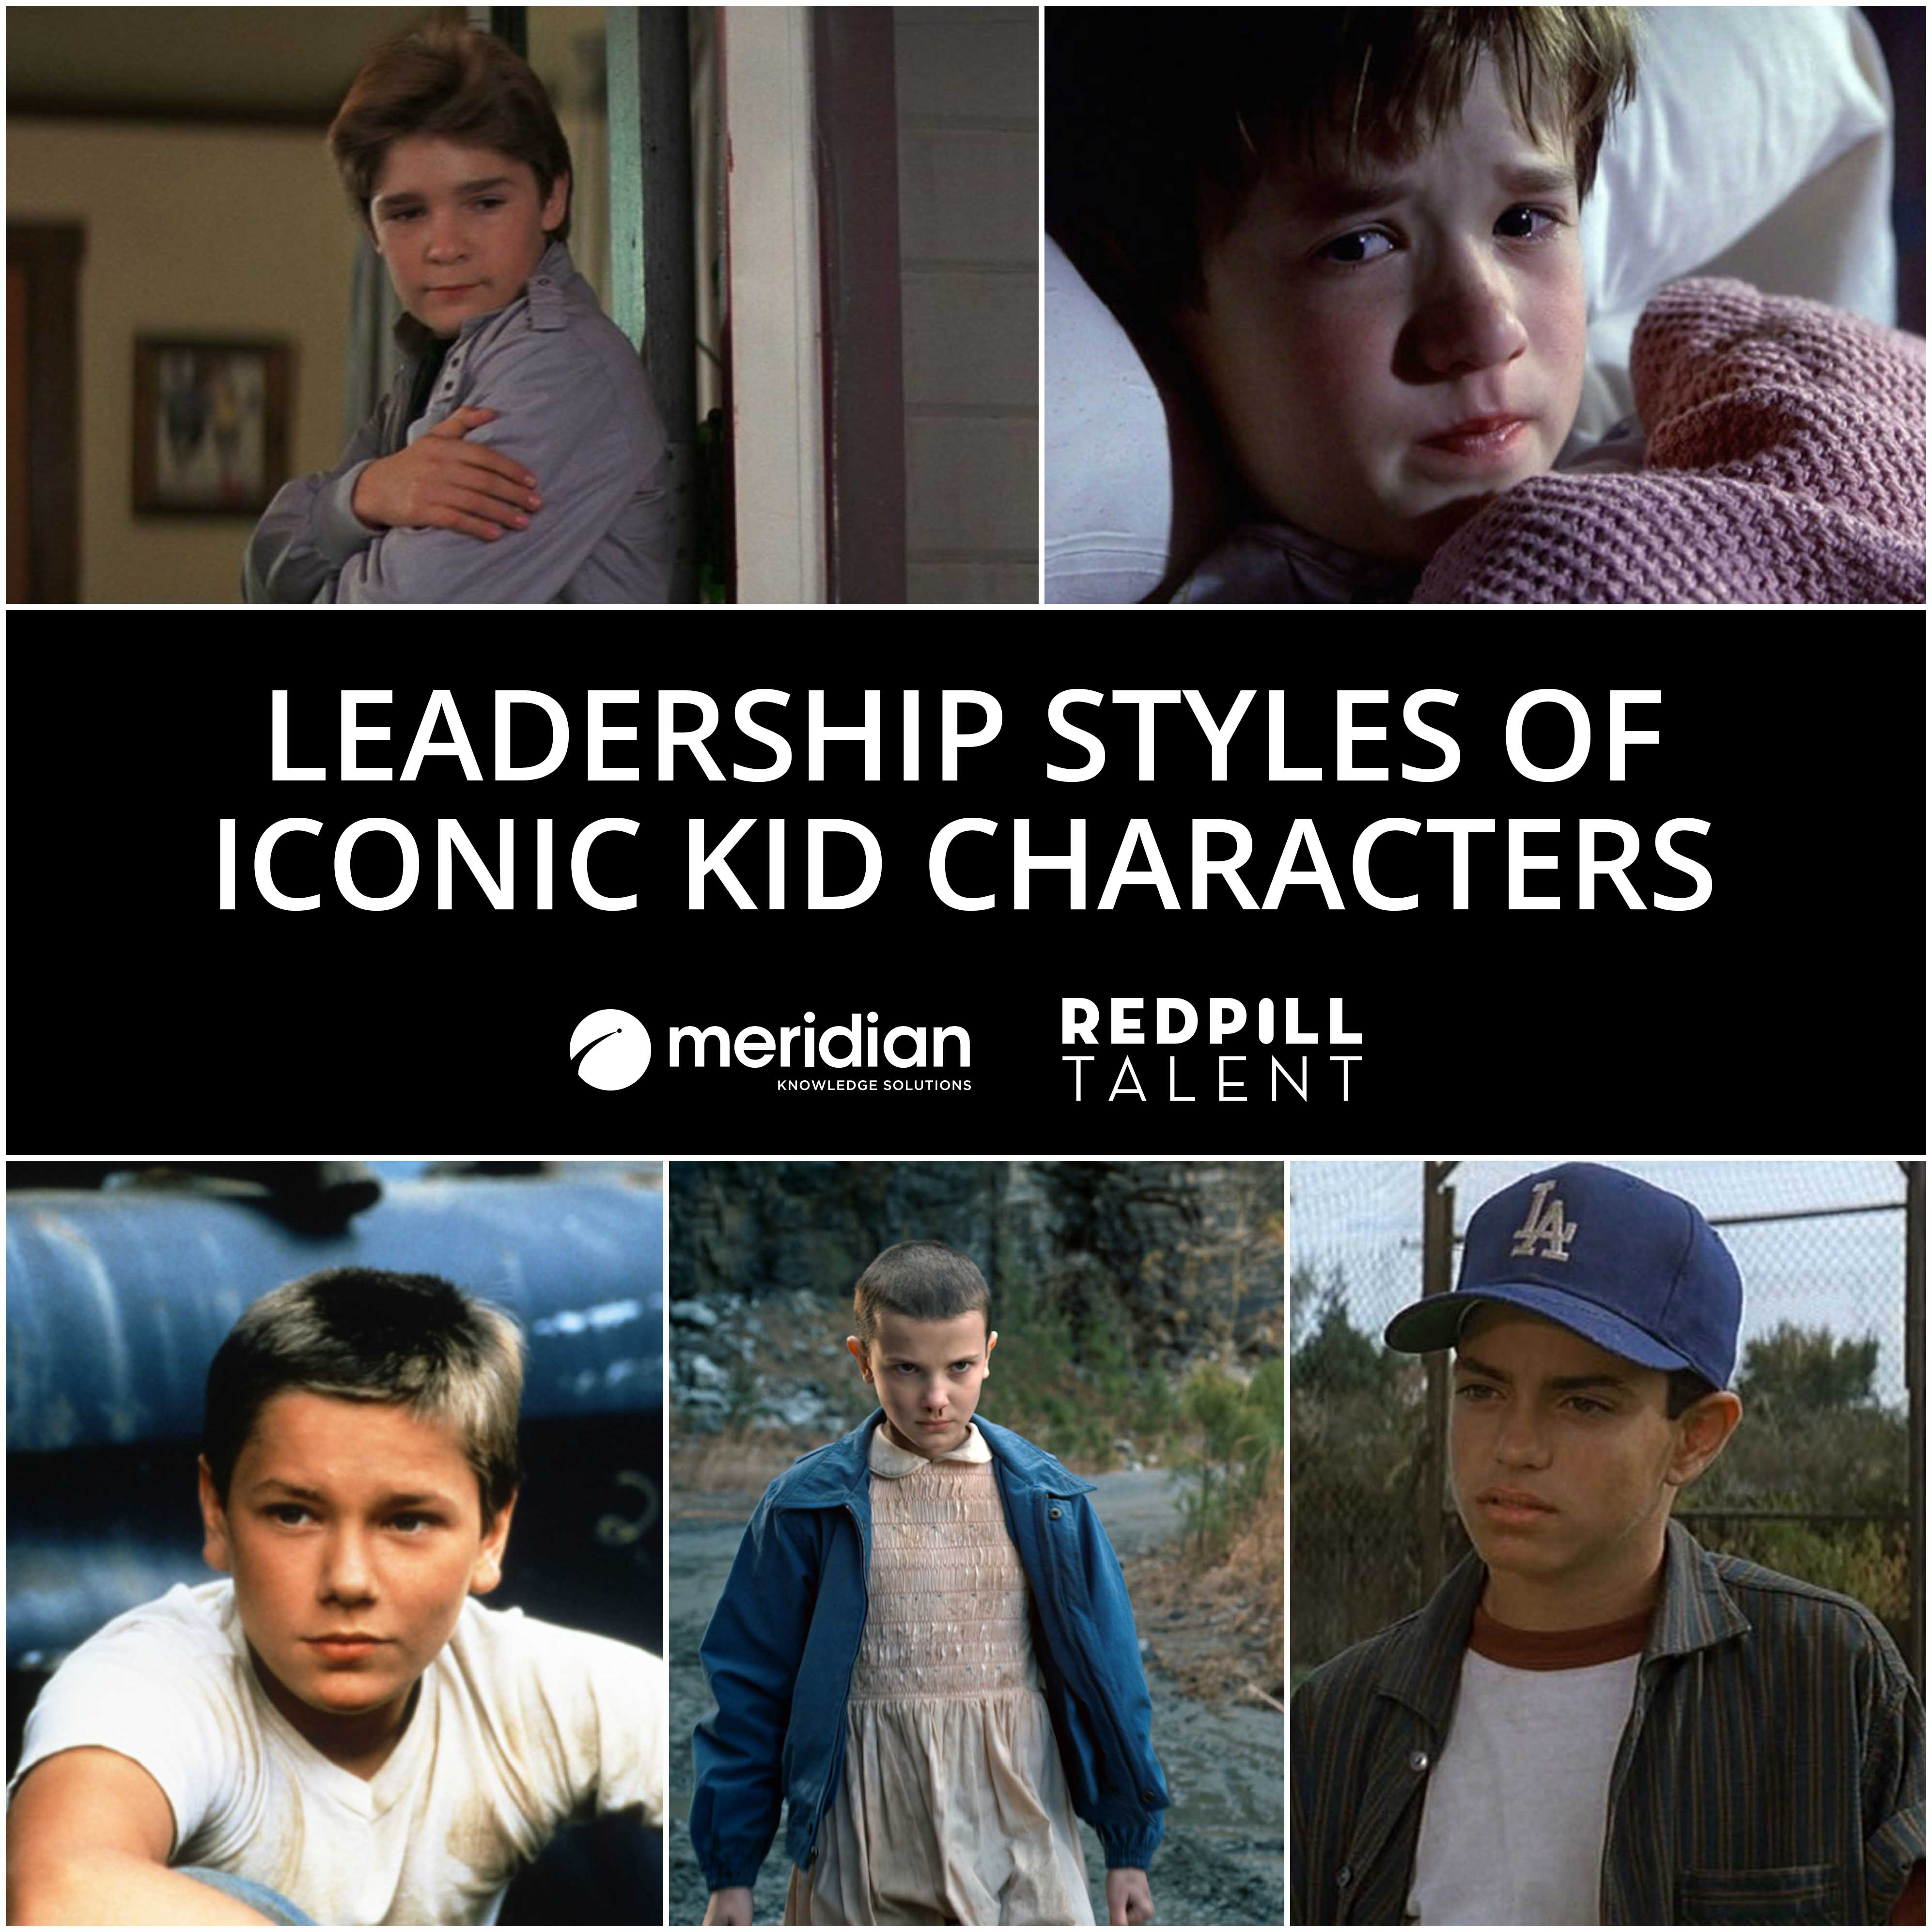 Leadership Styles of Iconic Kid Characters